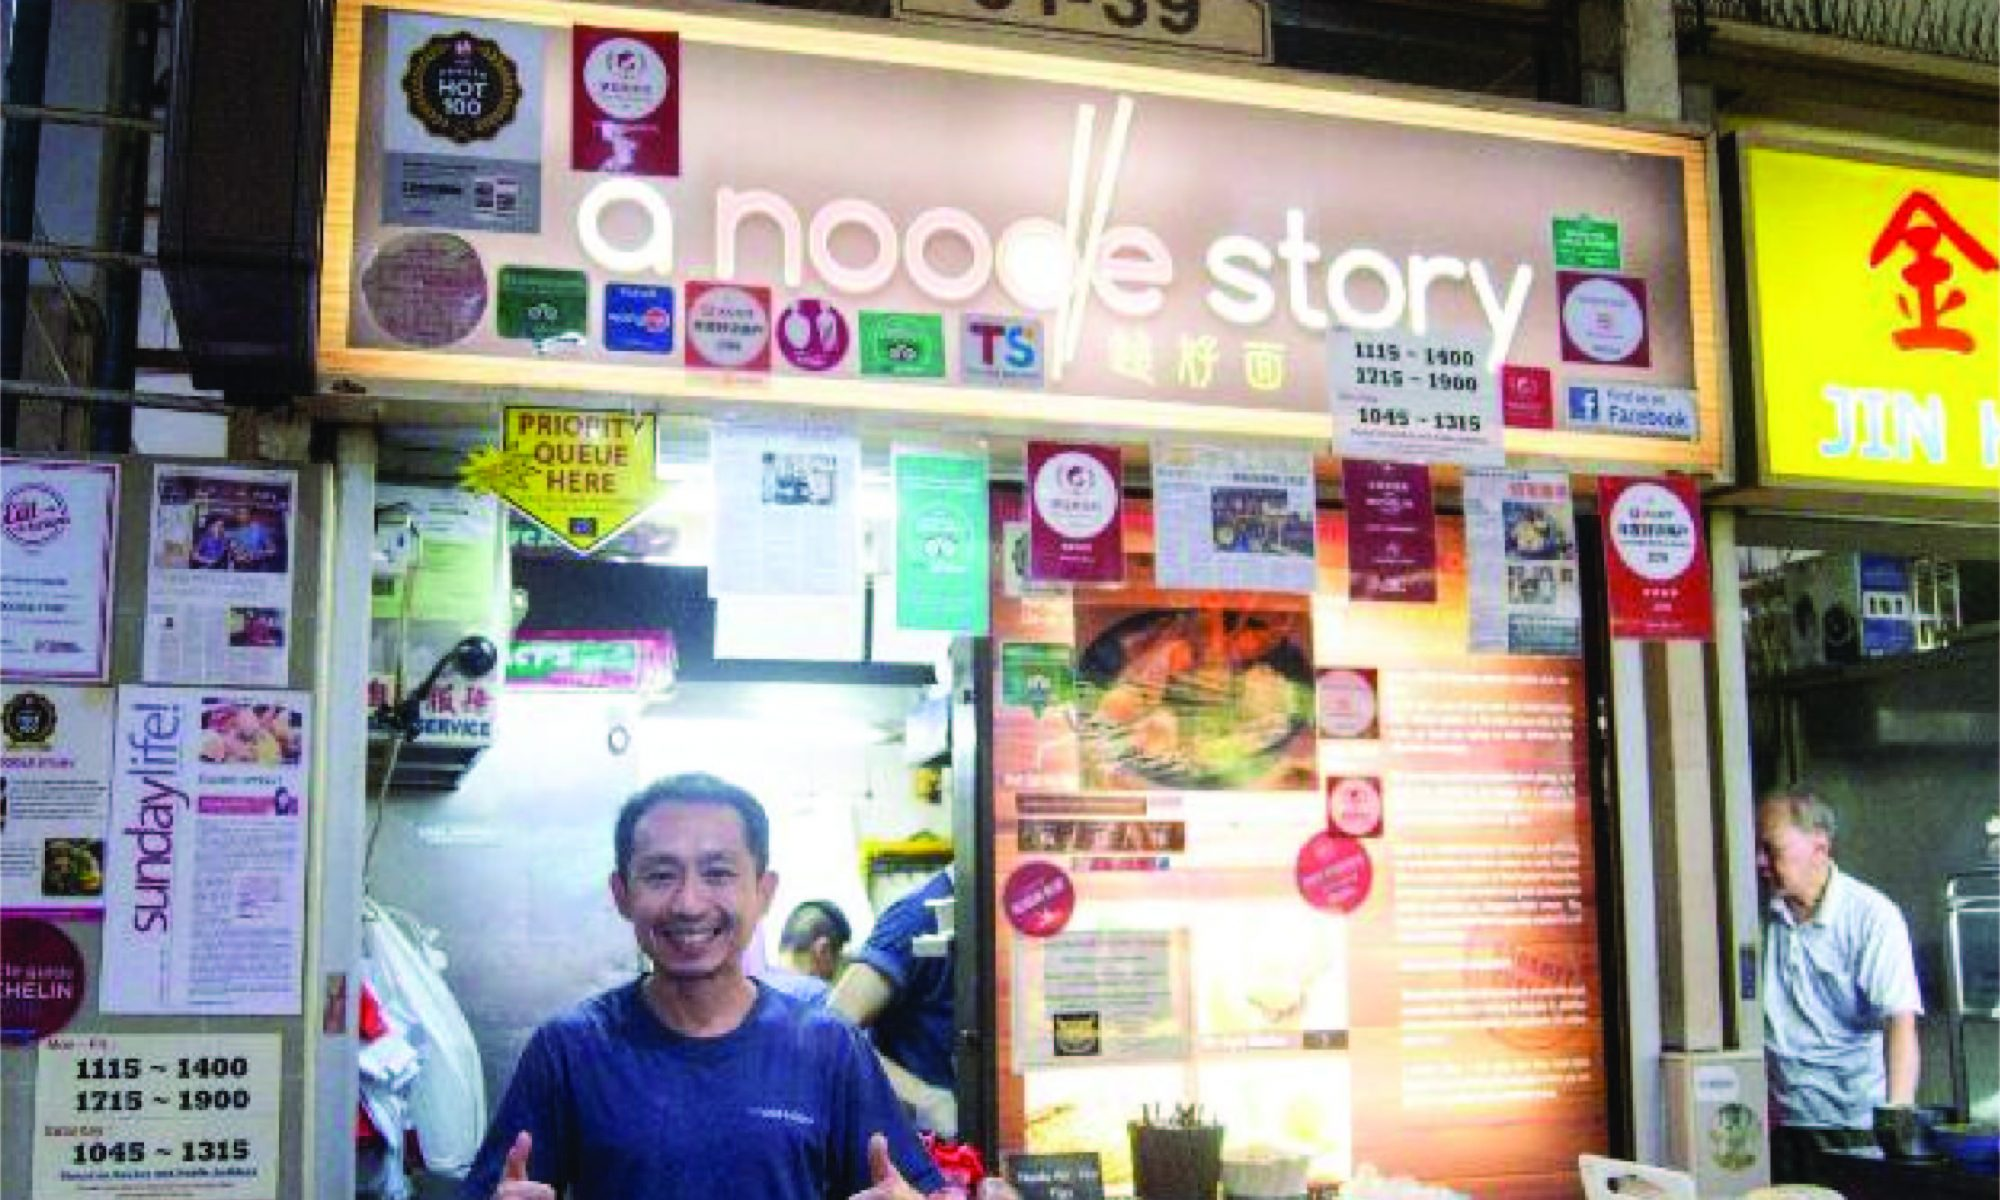 A Noodle Story WhyQ Delivery